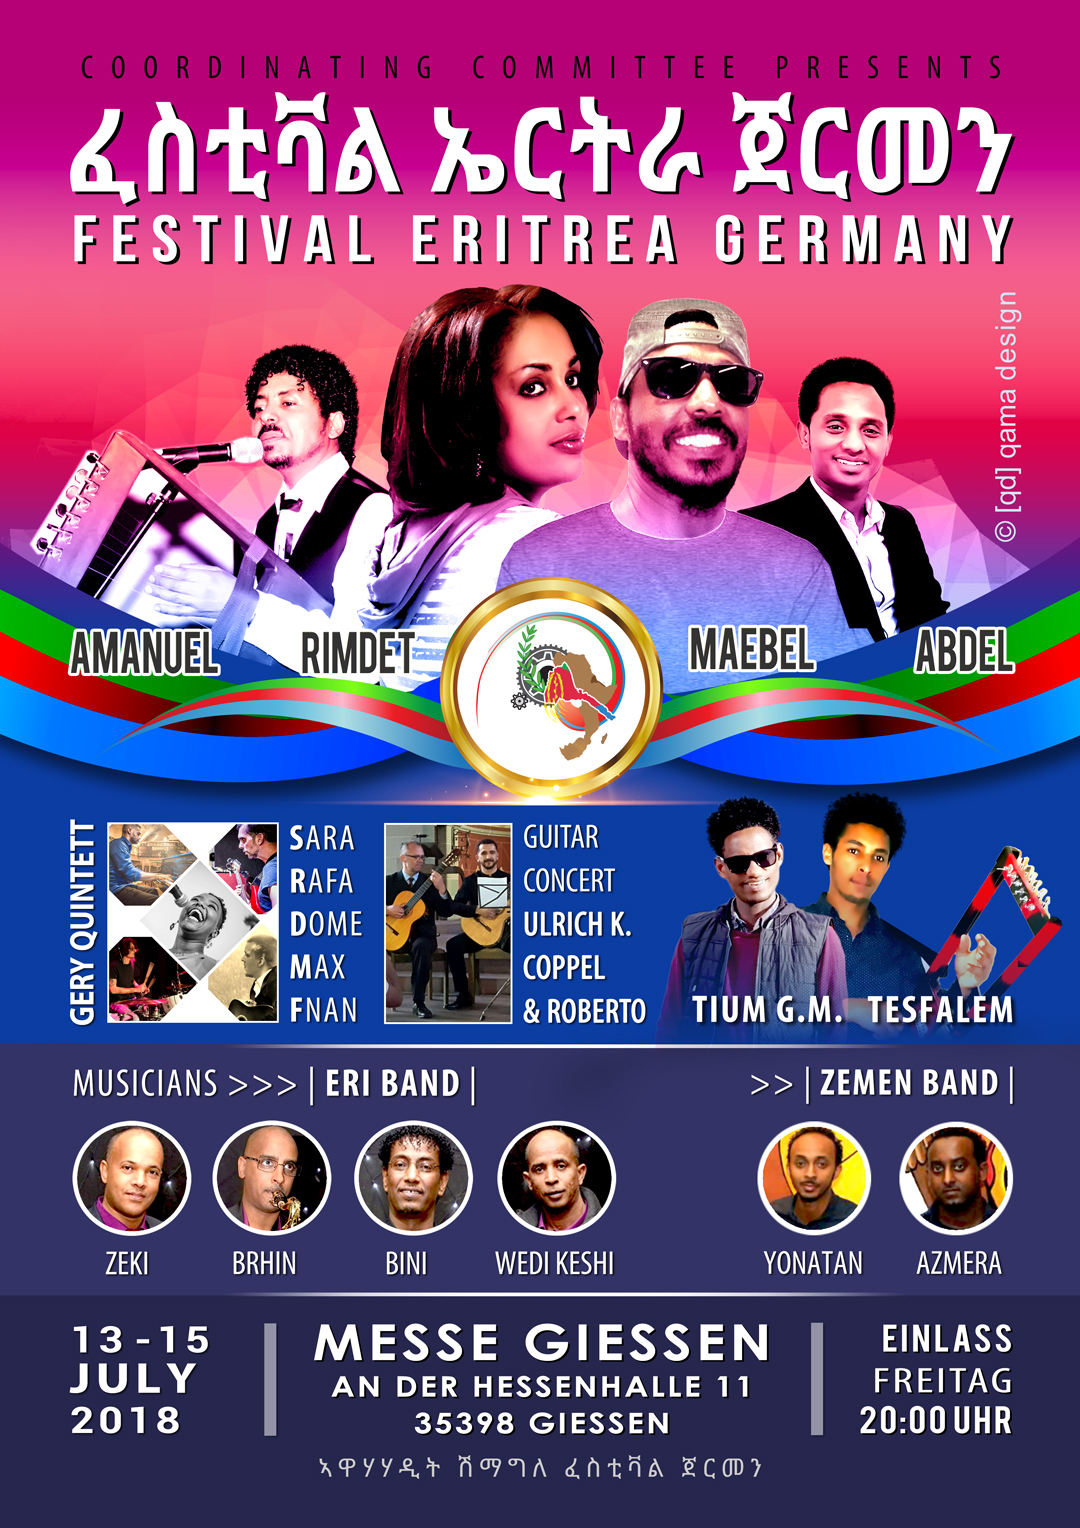 Festiva eritrea germany 2018   artists from germany